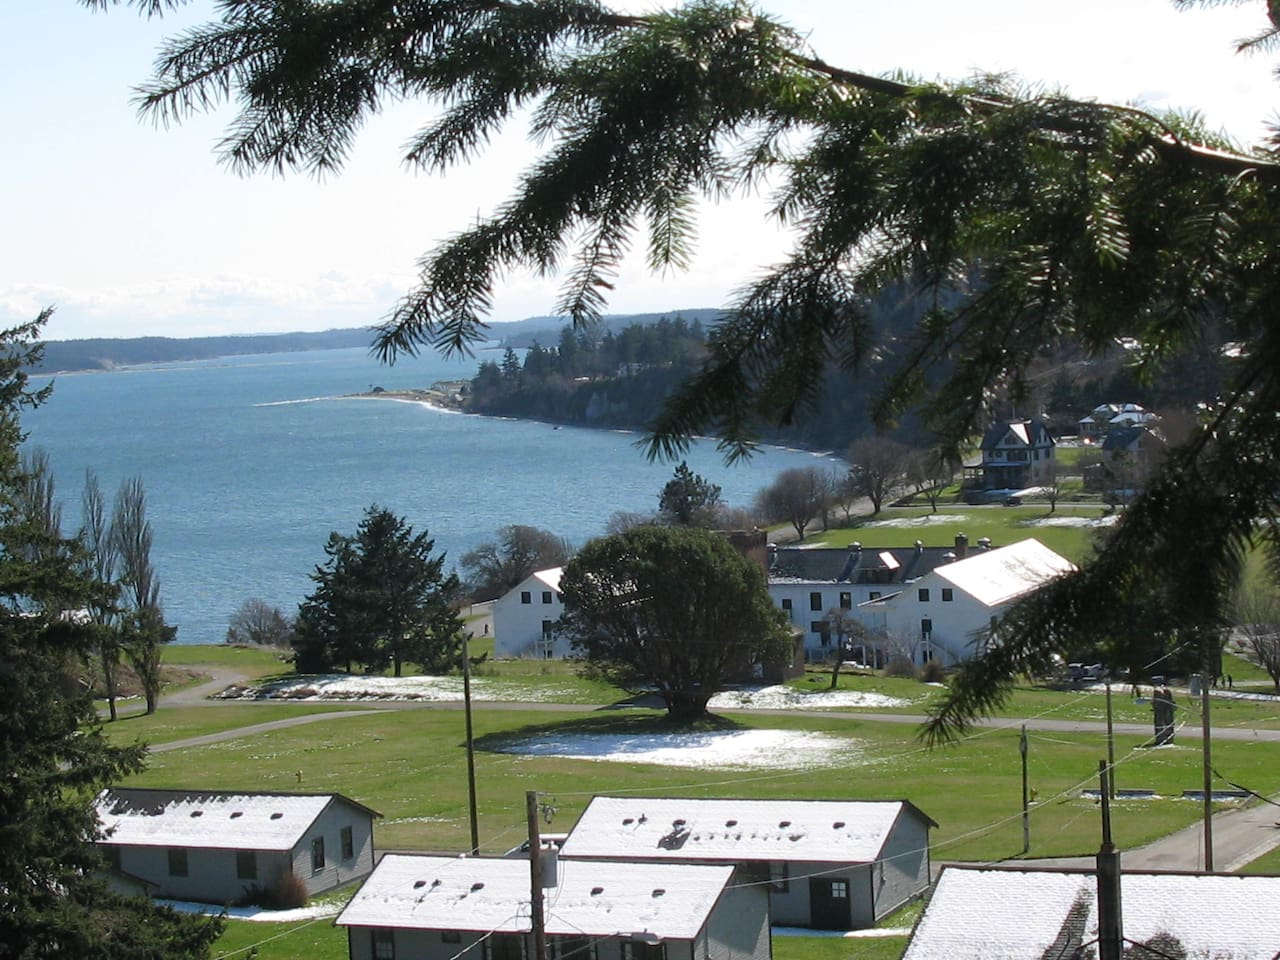 Fort Worden State Park and Puget Sound - they're right across the street!